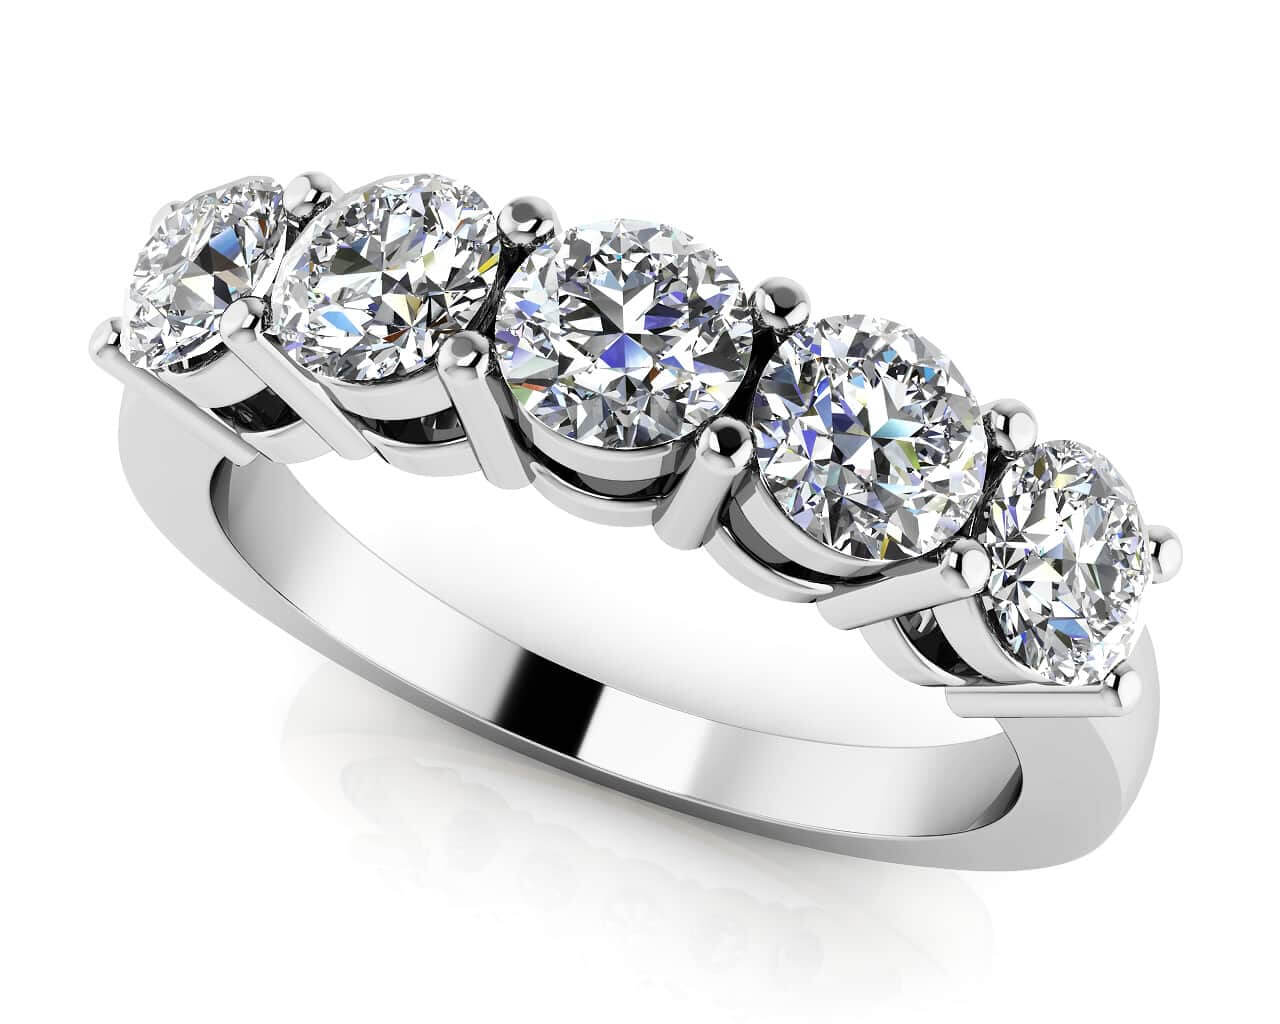 setting band anniversary sapphire design diamond heart prong bands ring shared rings wedding accent alternating